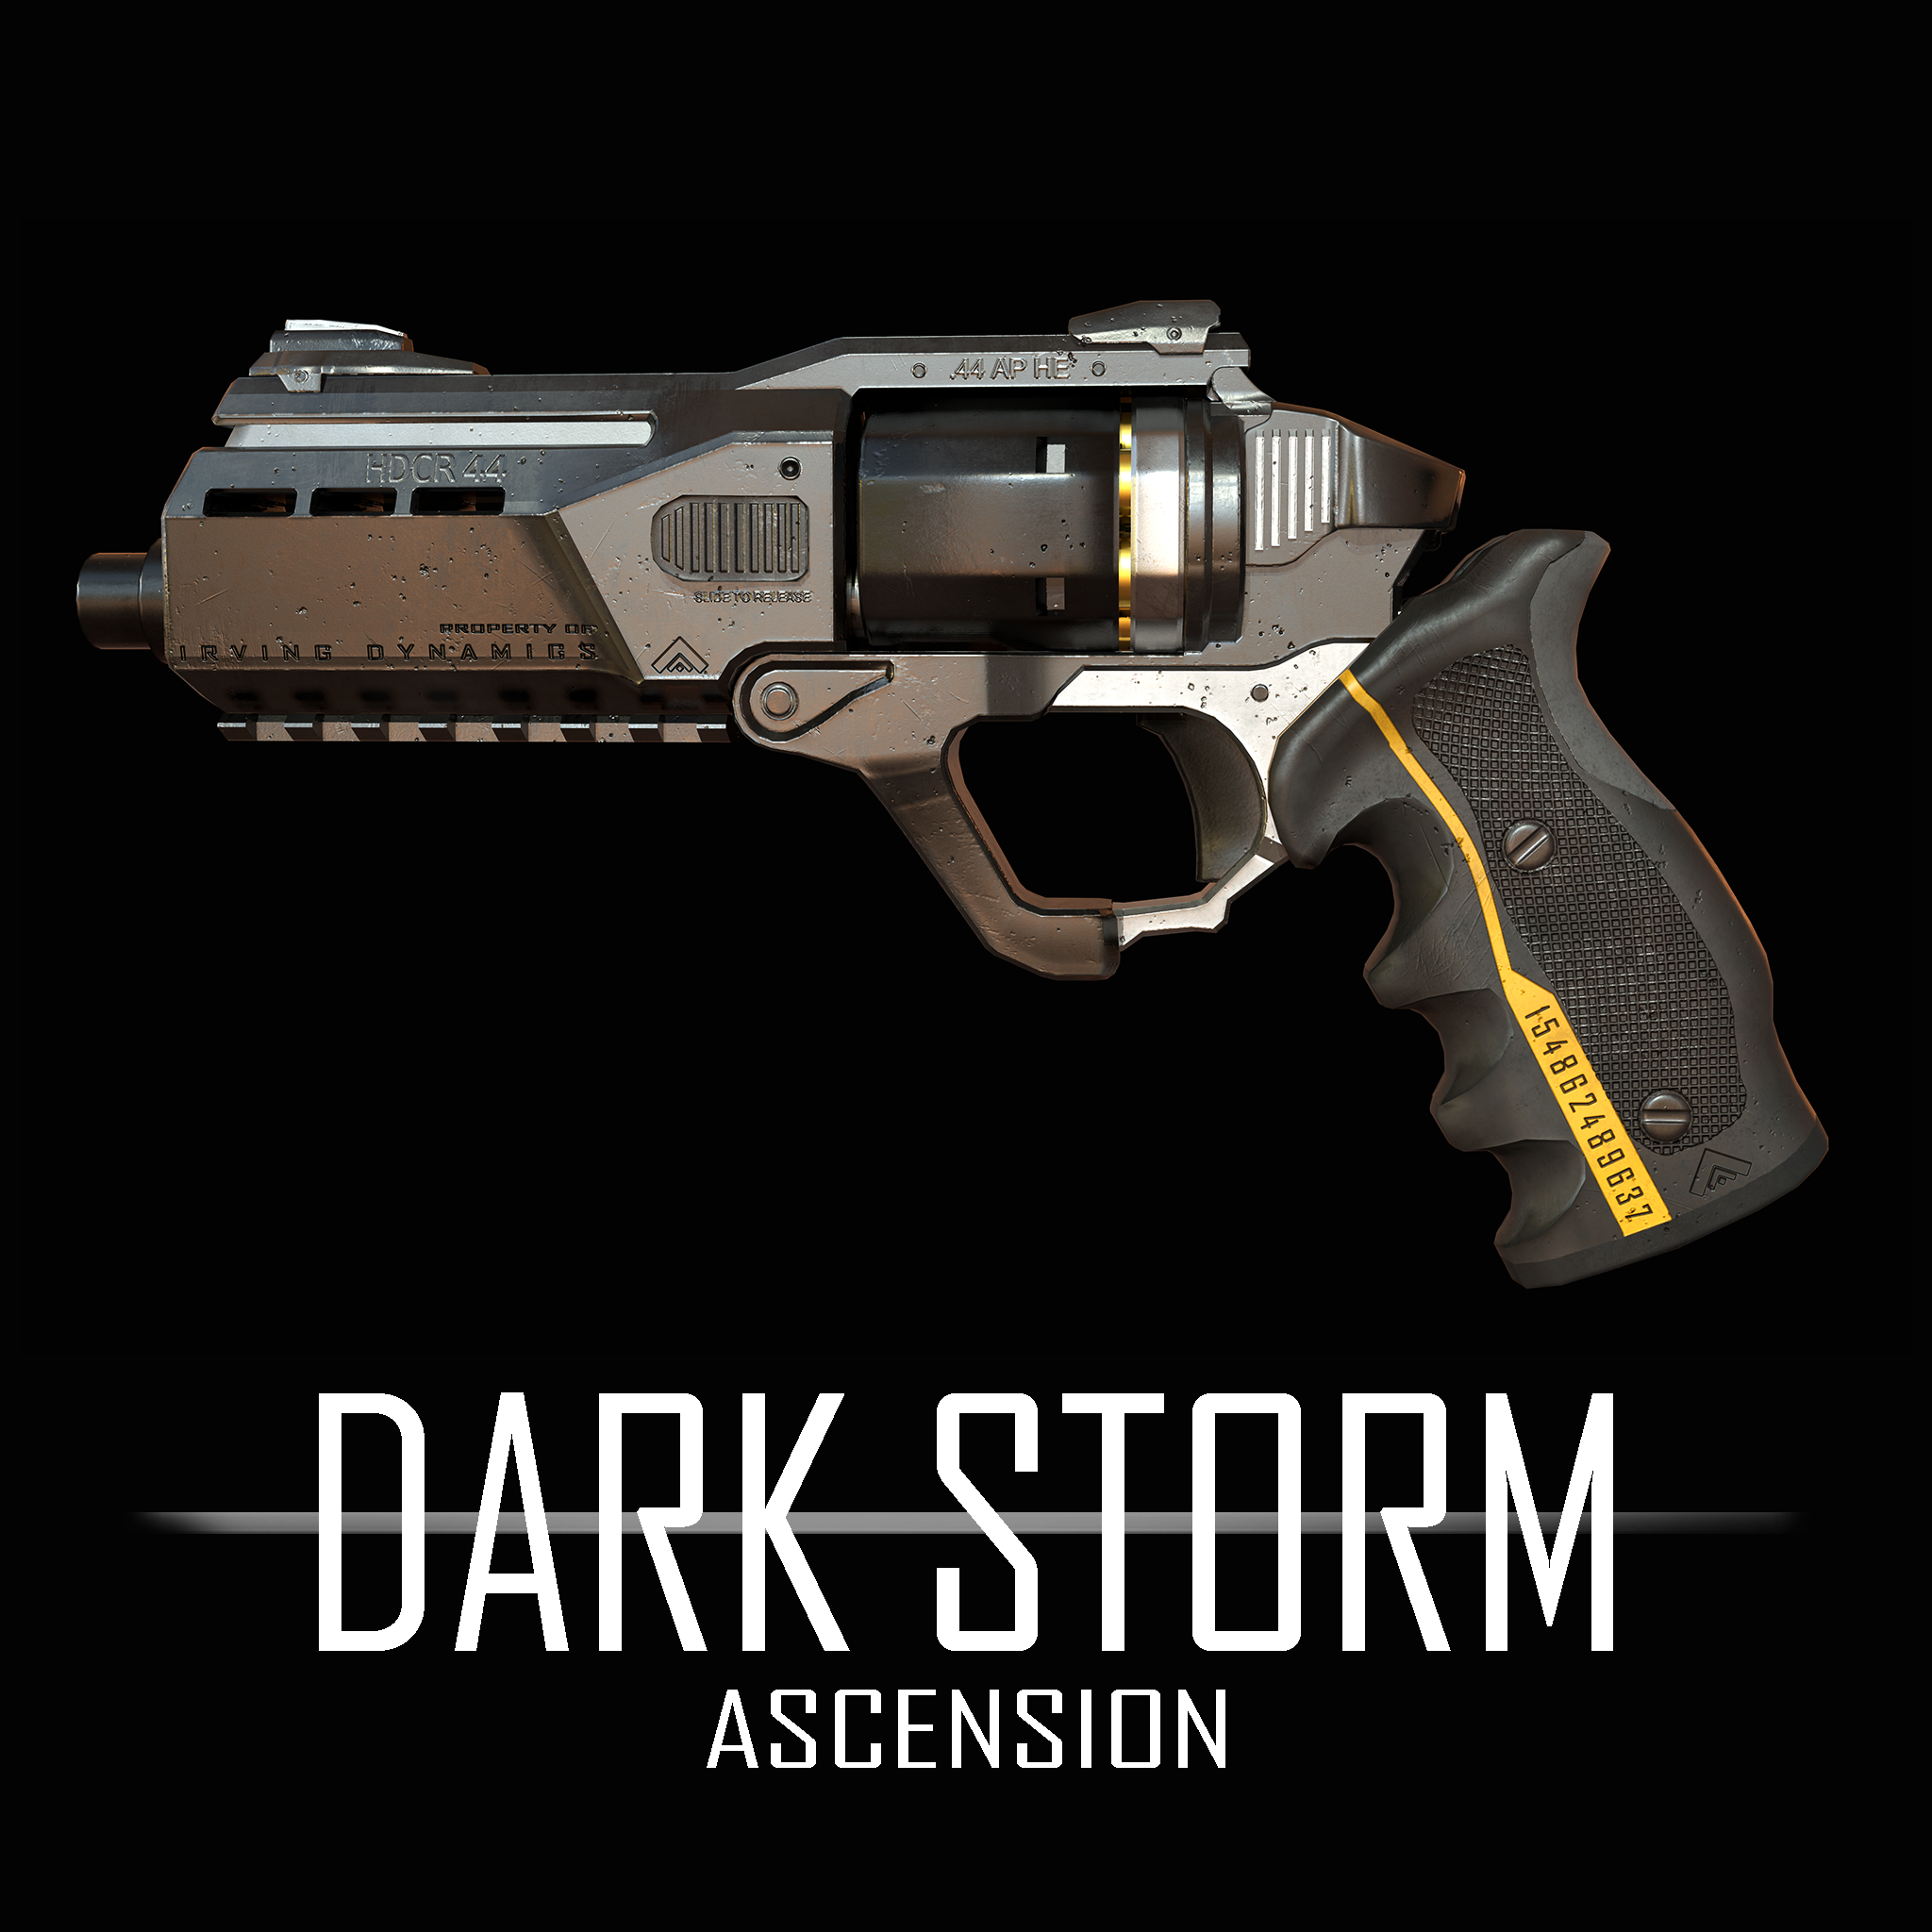 Dark Storm Ascension: Game Asset - Revolver HDCR 44 - Pistol